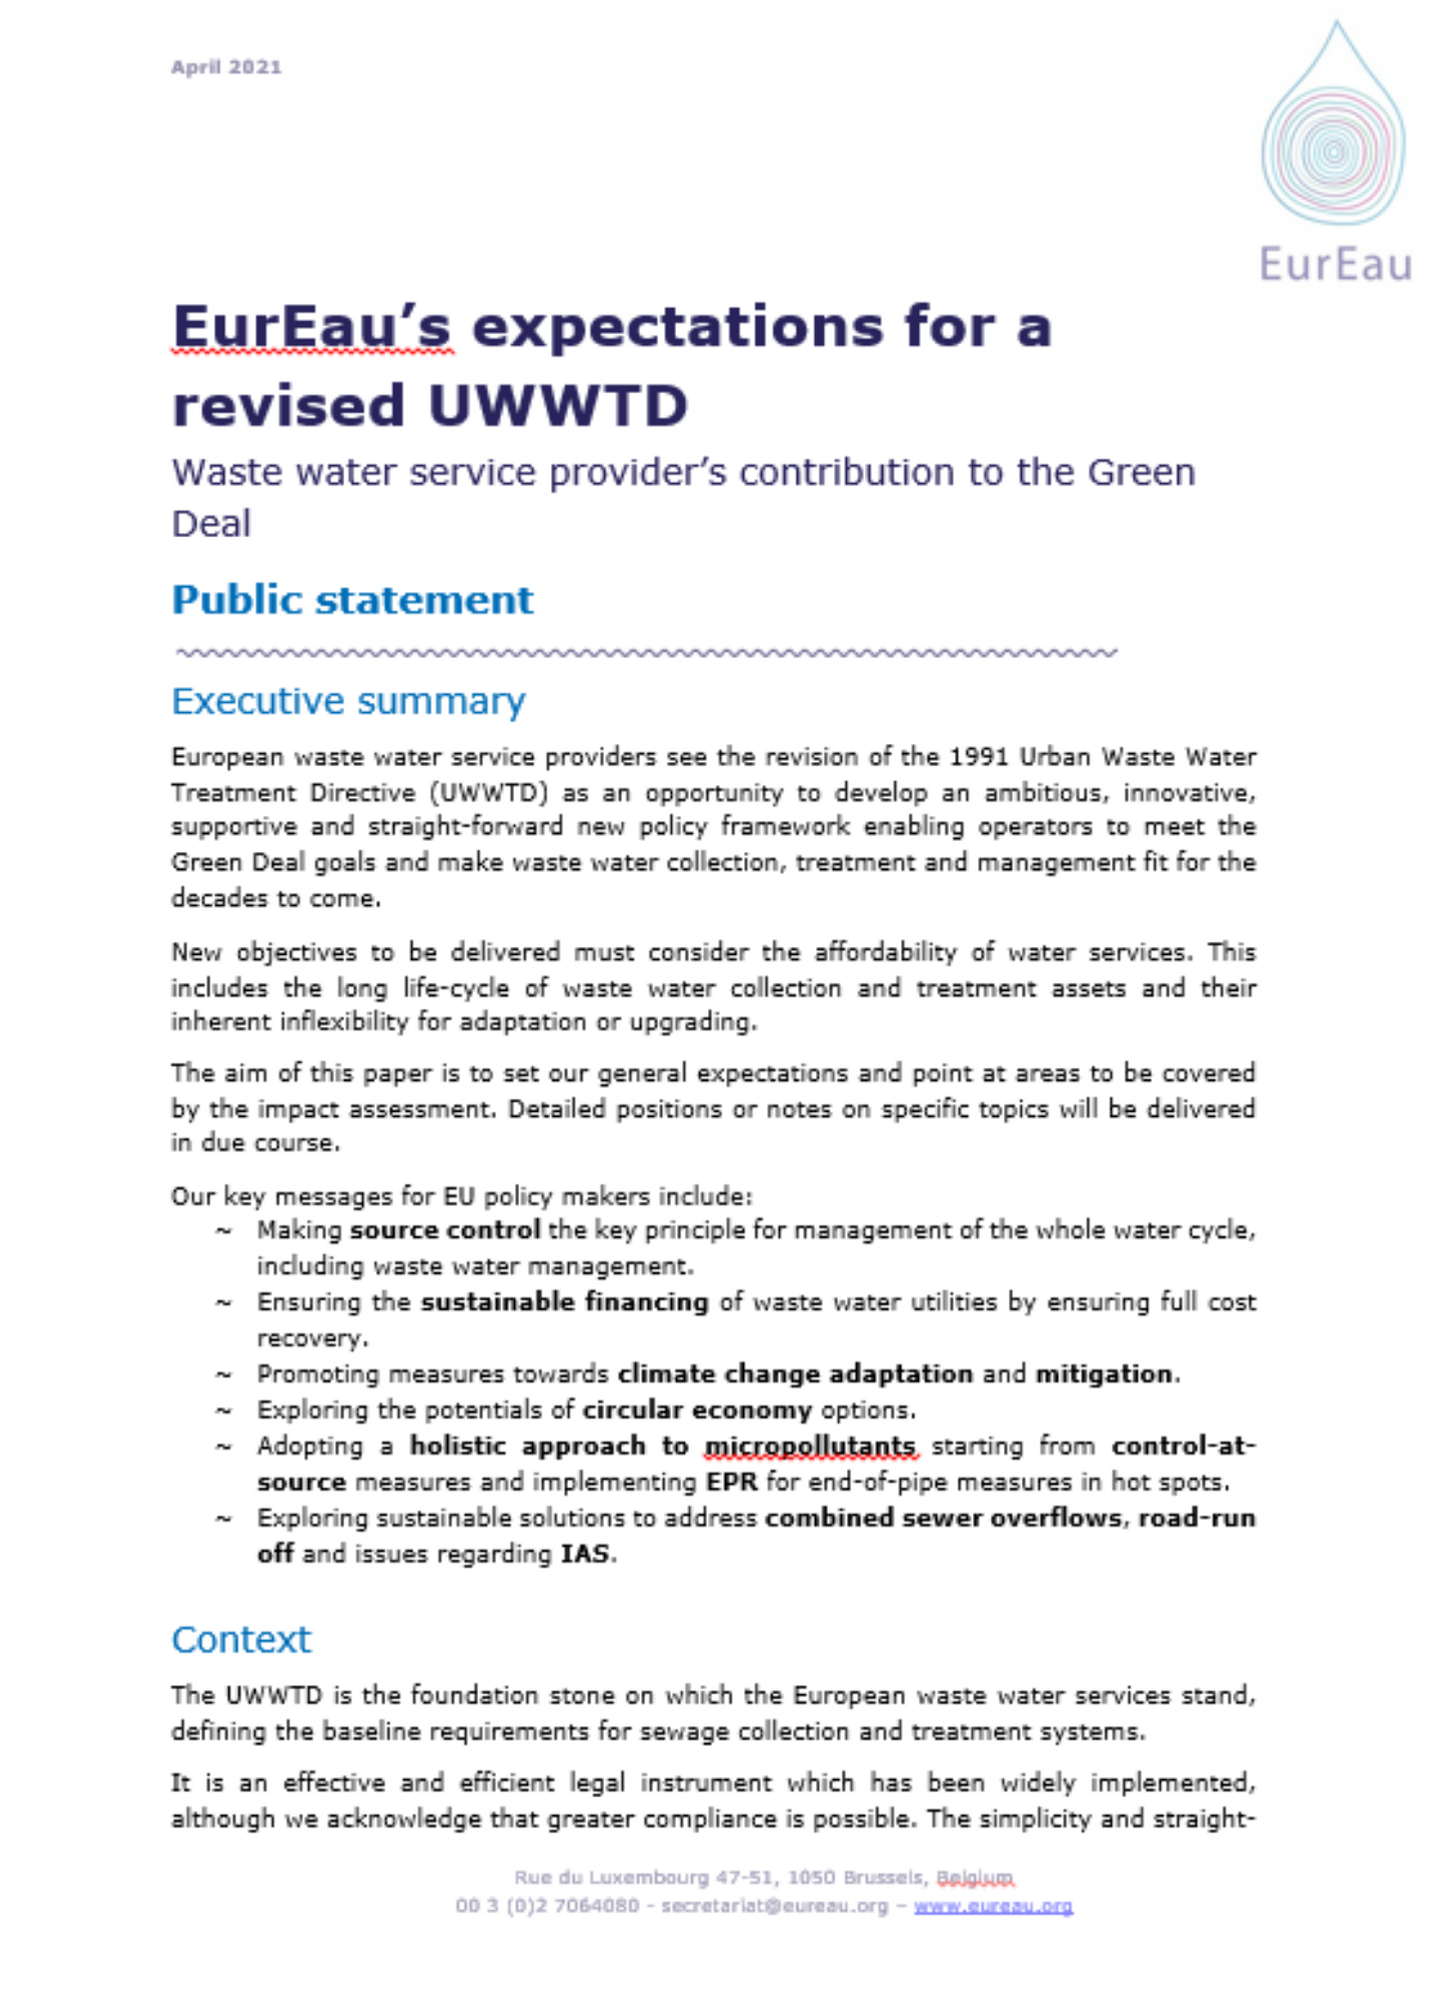 EurEau expectations in UWWTD revision process: public statement